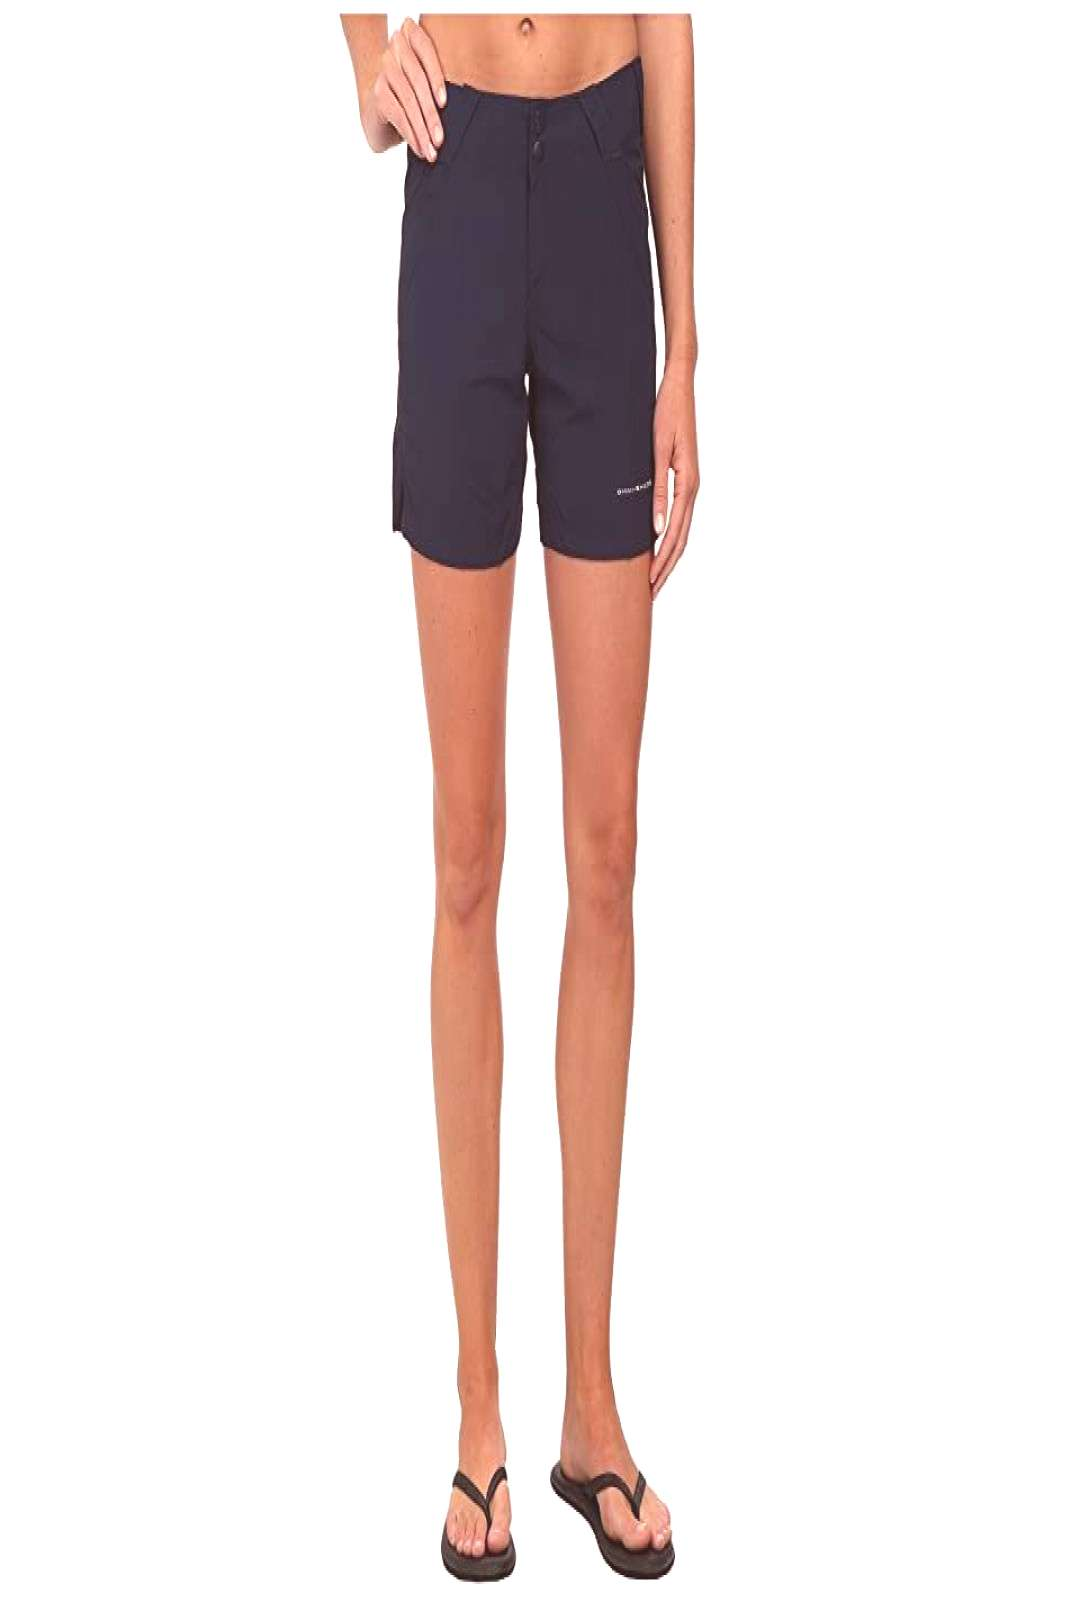 Columbia Coral Pointtm II Short (Collegiate Navy) Women's Shorts. Stay cool and comfortable the nex